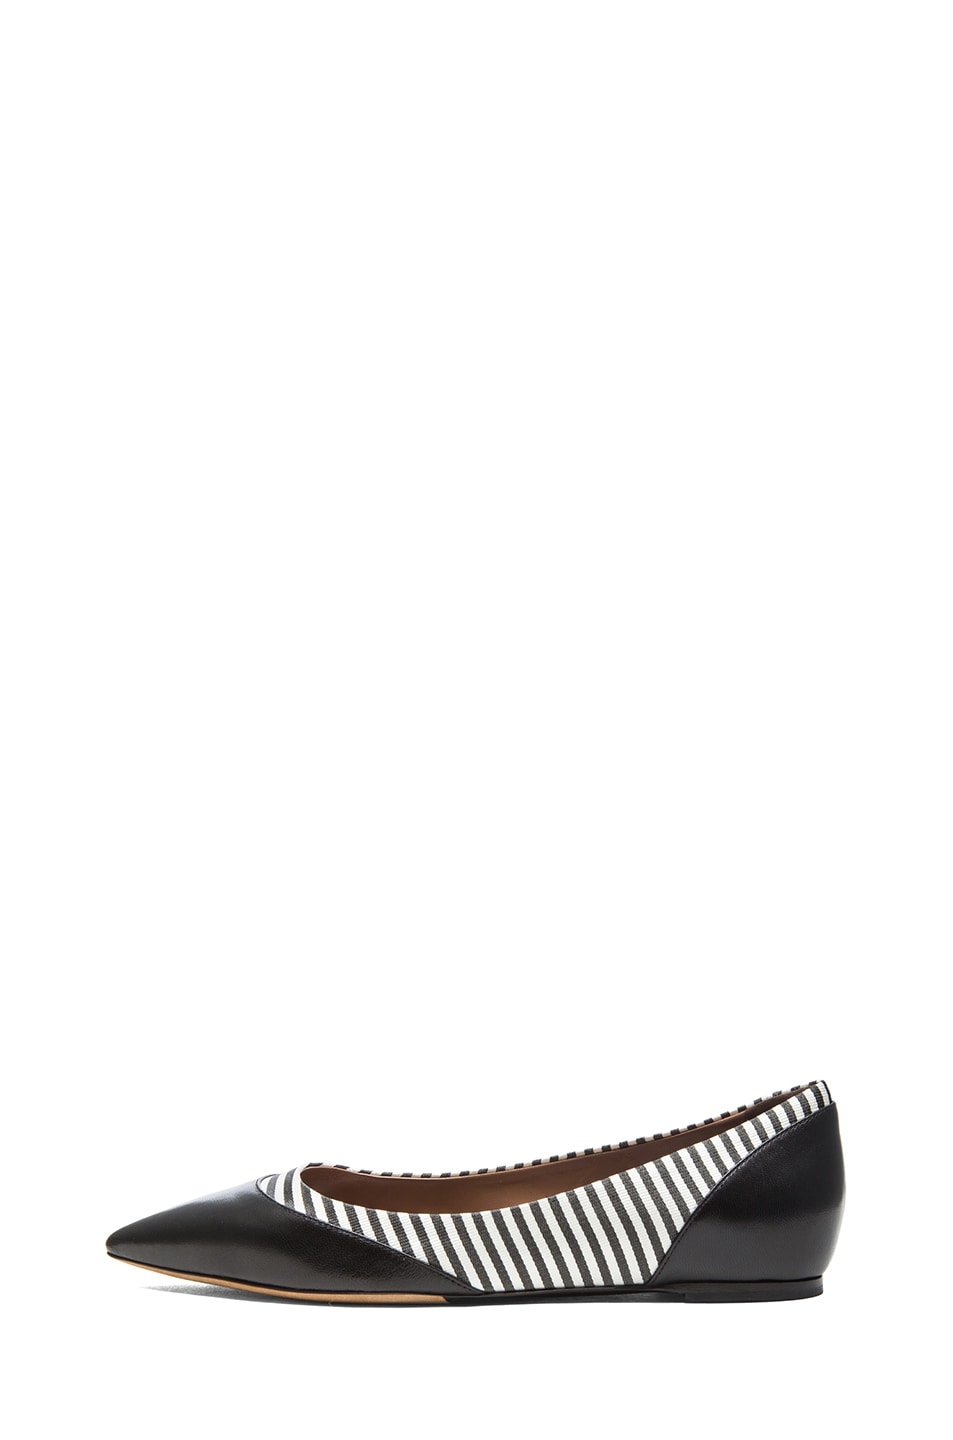 Image 1 of Tabitha Simmons Leith Grossgrain Fabric & Leather Flats in Black & Shirt Stripe